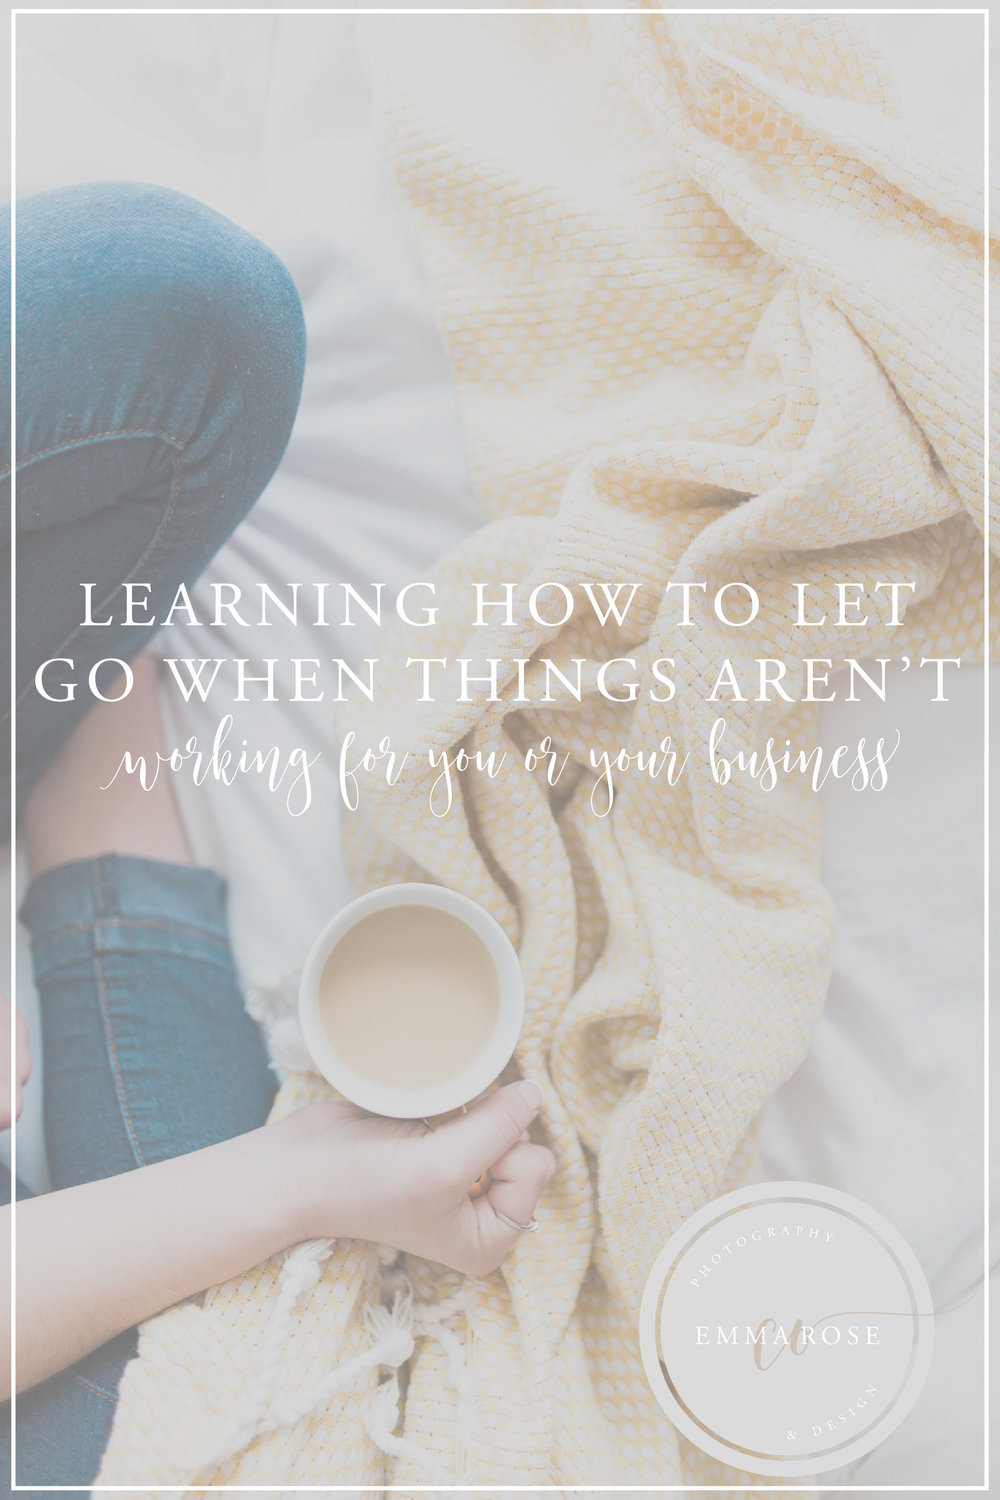 Learning how to let go when things aren't working for your or your business